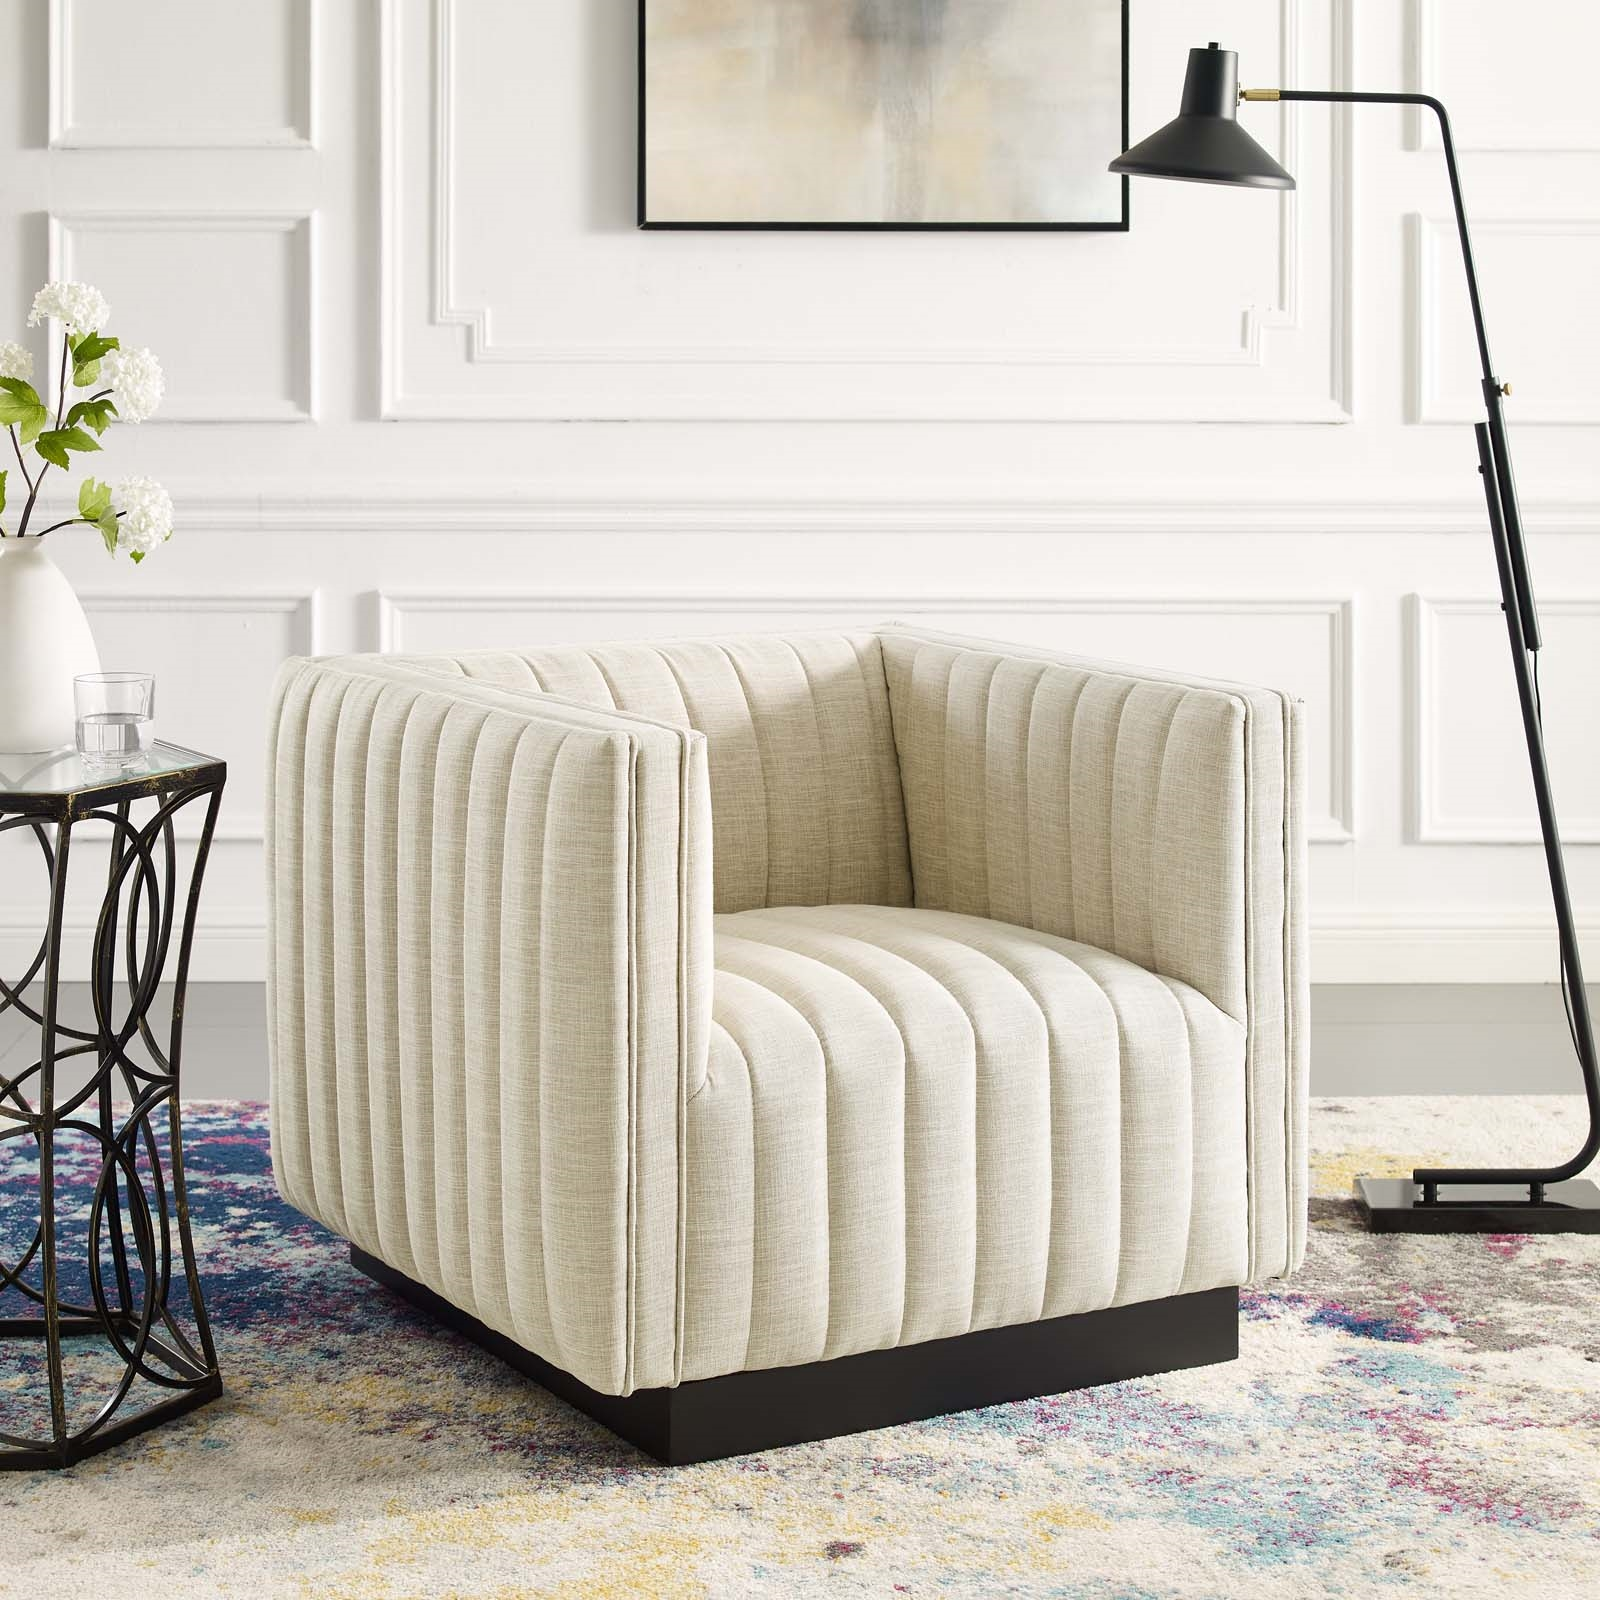 Conjure Tufted Upholstered Fabric Armchair in Beige